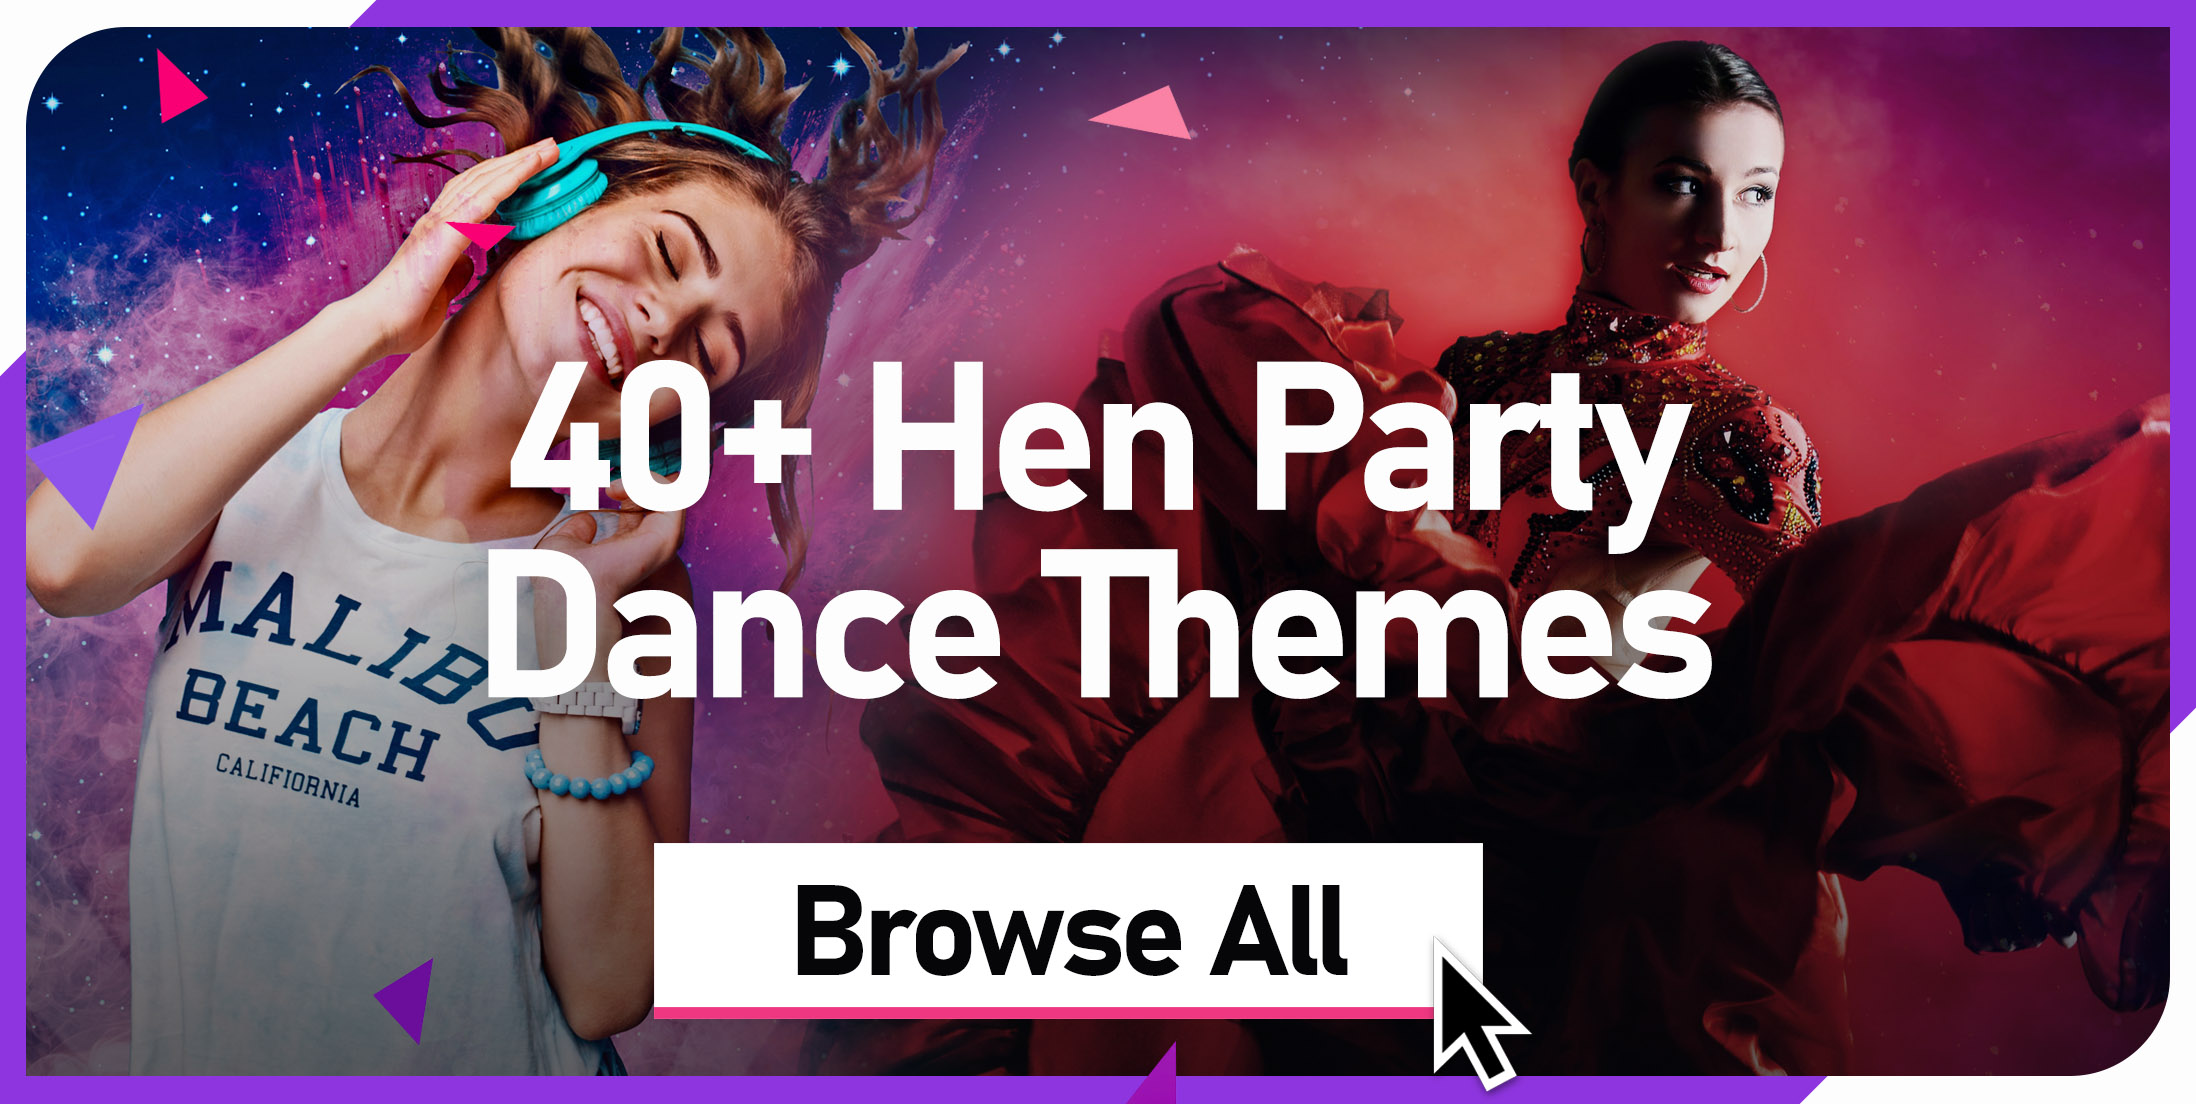 40+ Hen Party Dance Themes